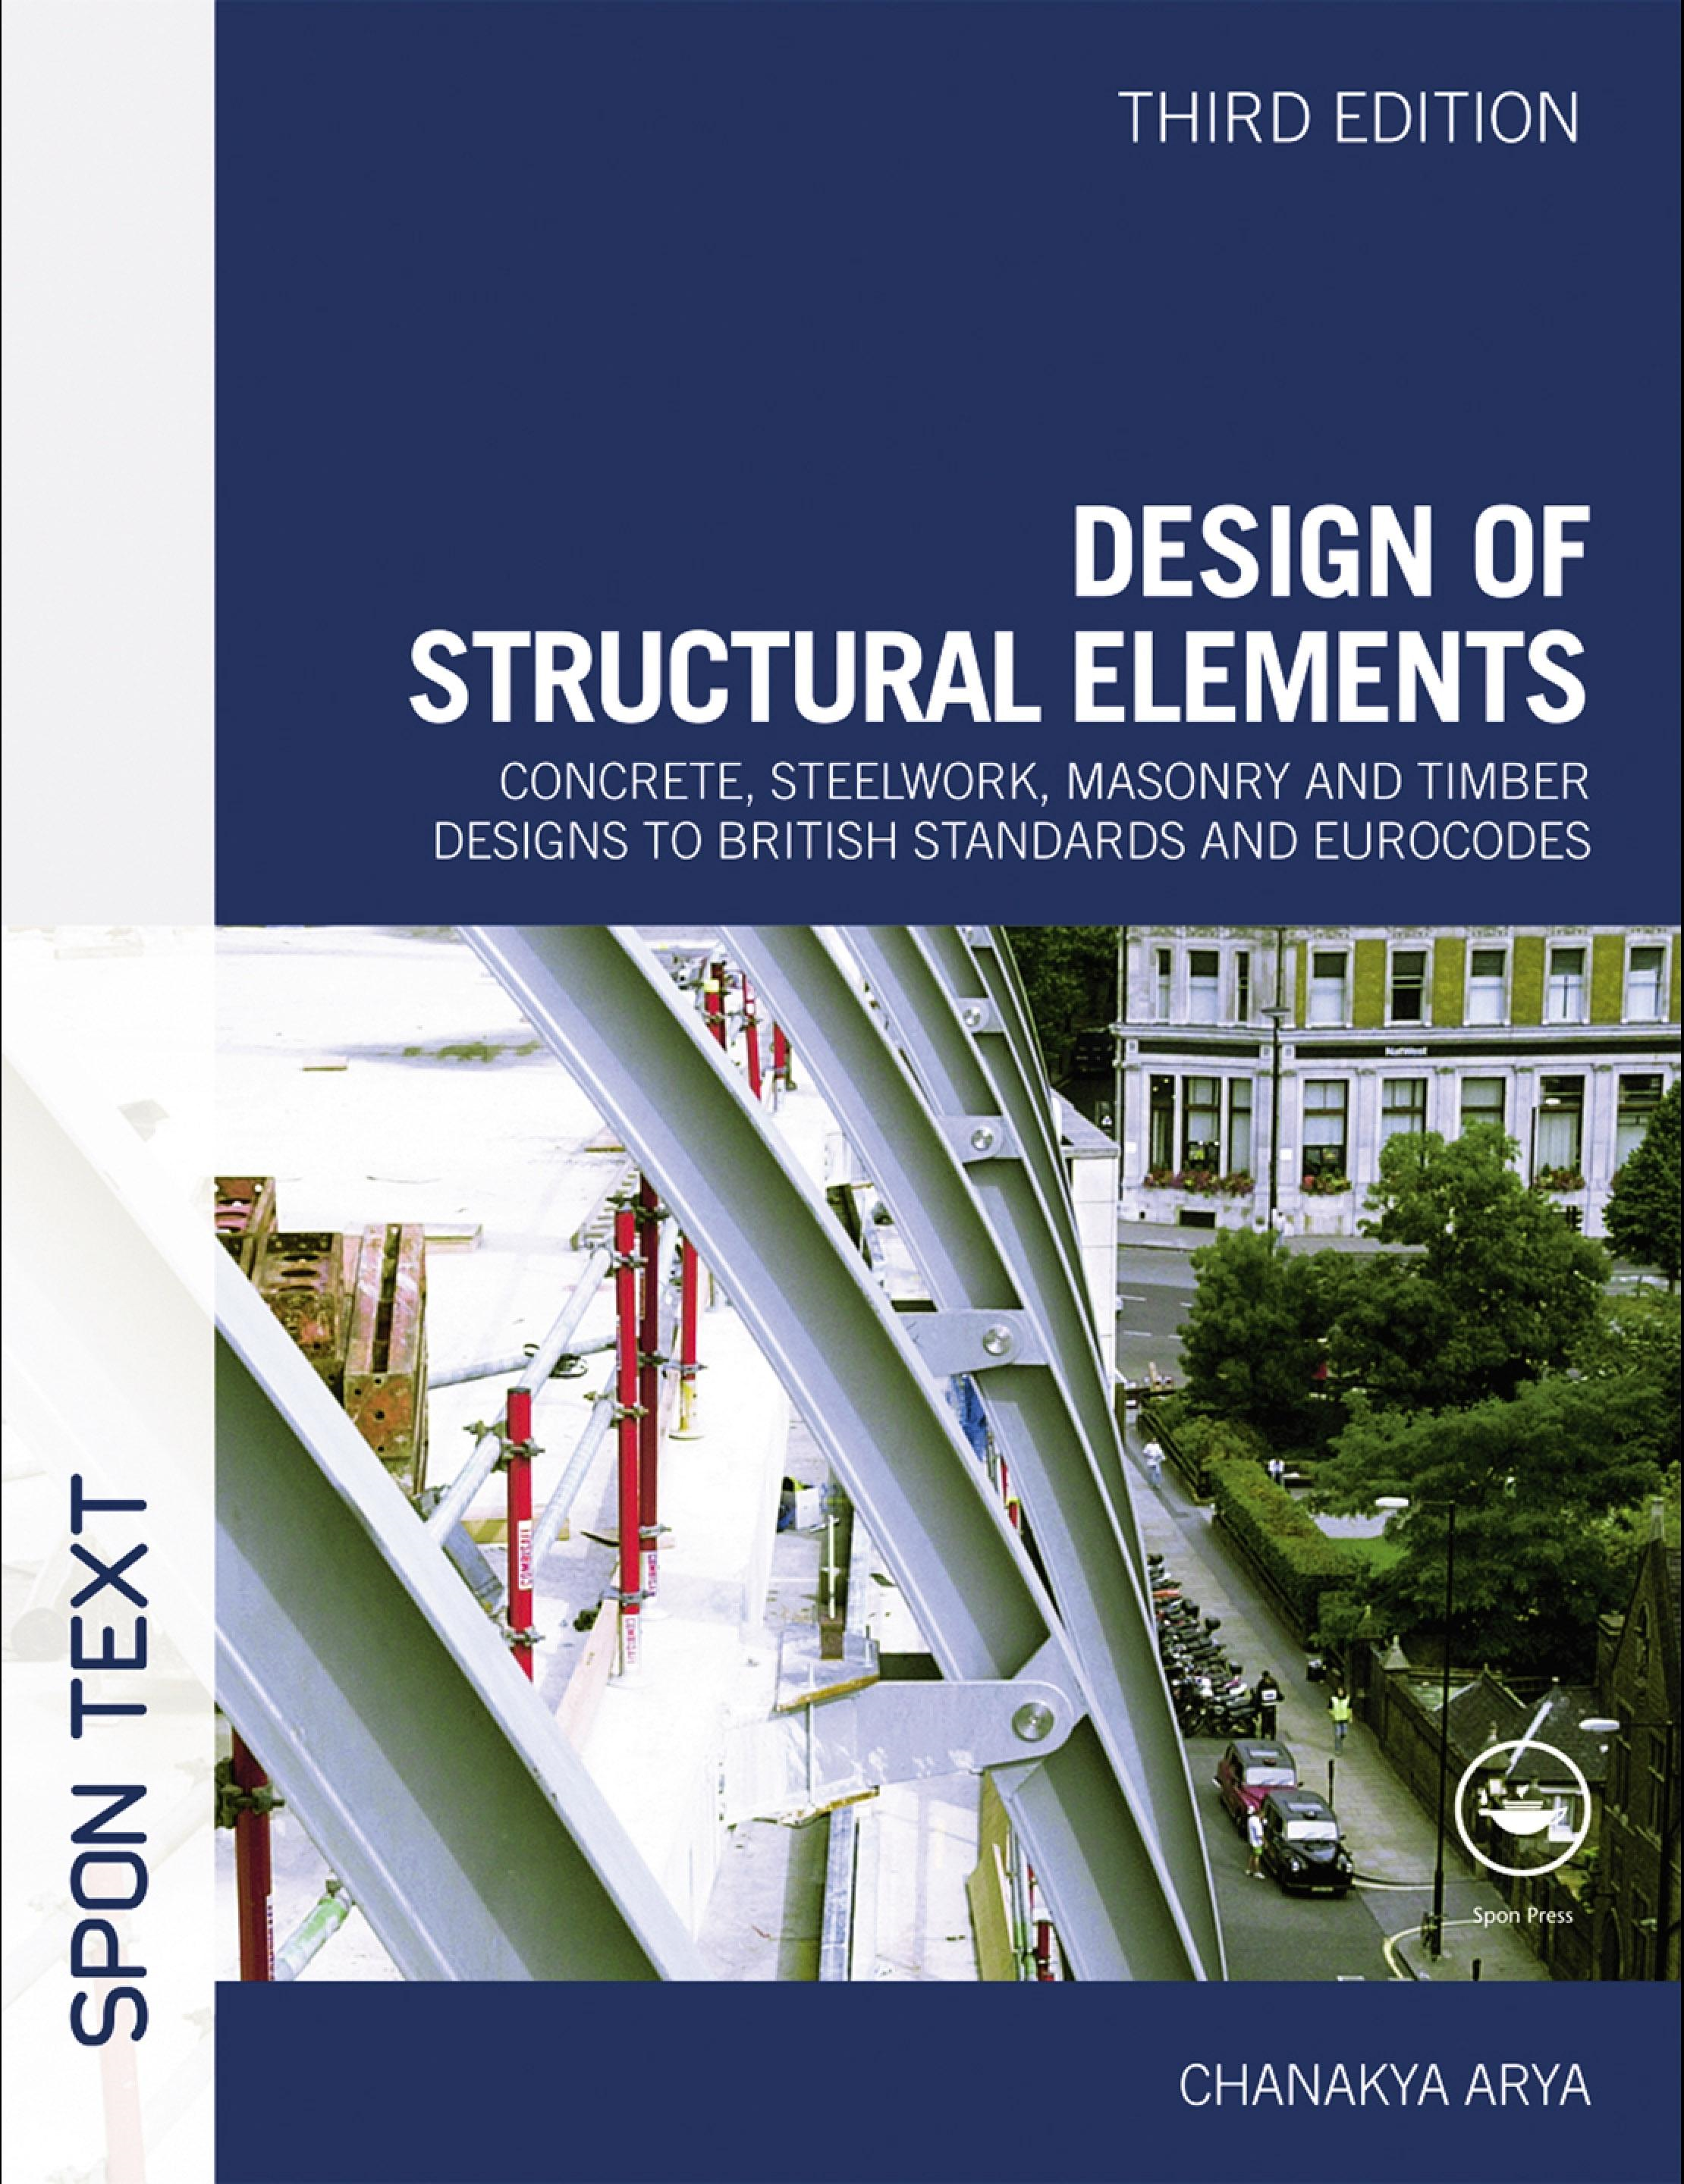 Design of Structural Elements: Concrete, Steelwork, Masonry and Timber Designs to British Standards and Eurocodes